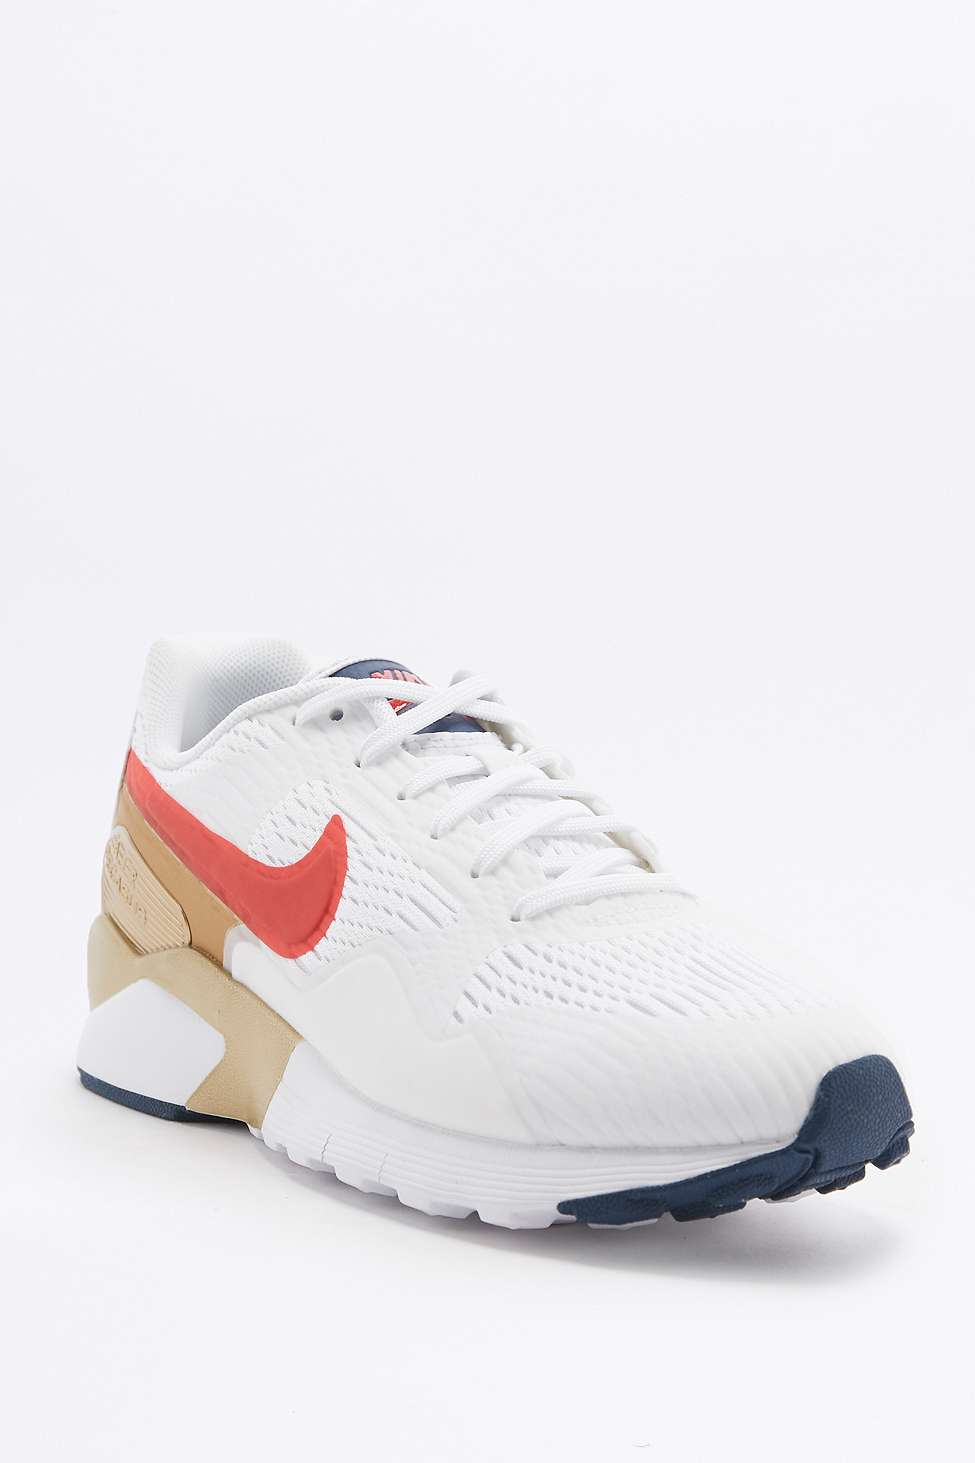 Nike Air Pegasus 92 Red, Gold, and Blue Sneakers